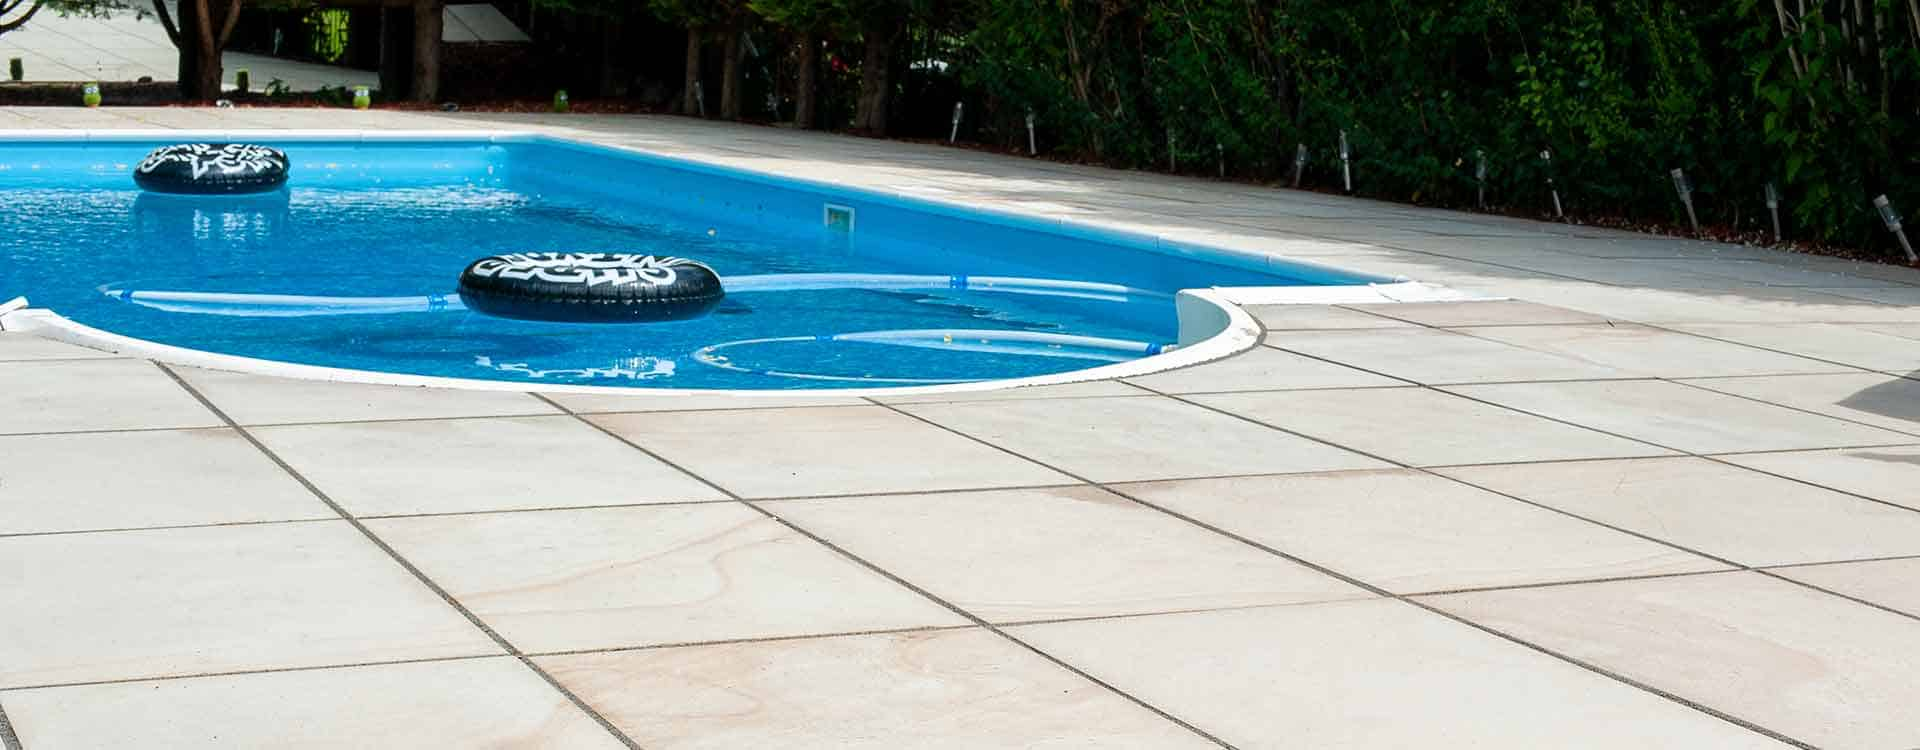 Paved area around swimming pool